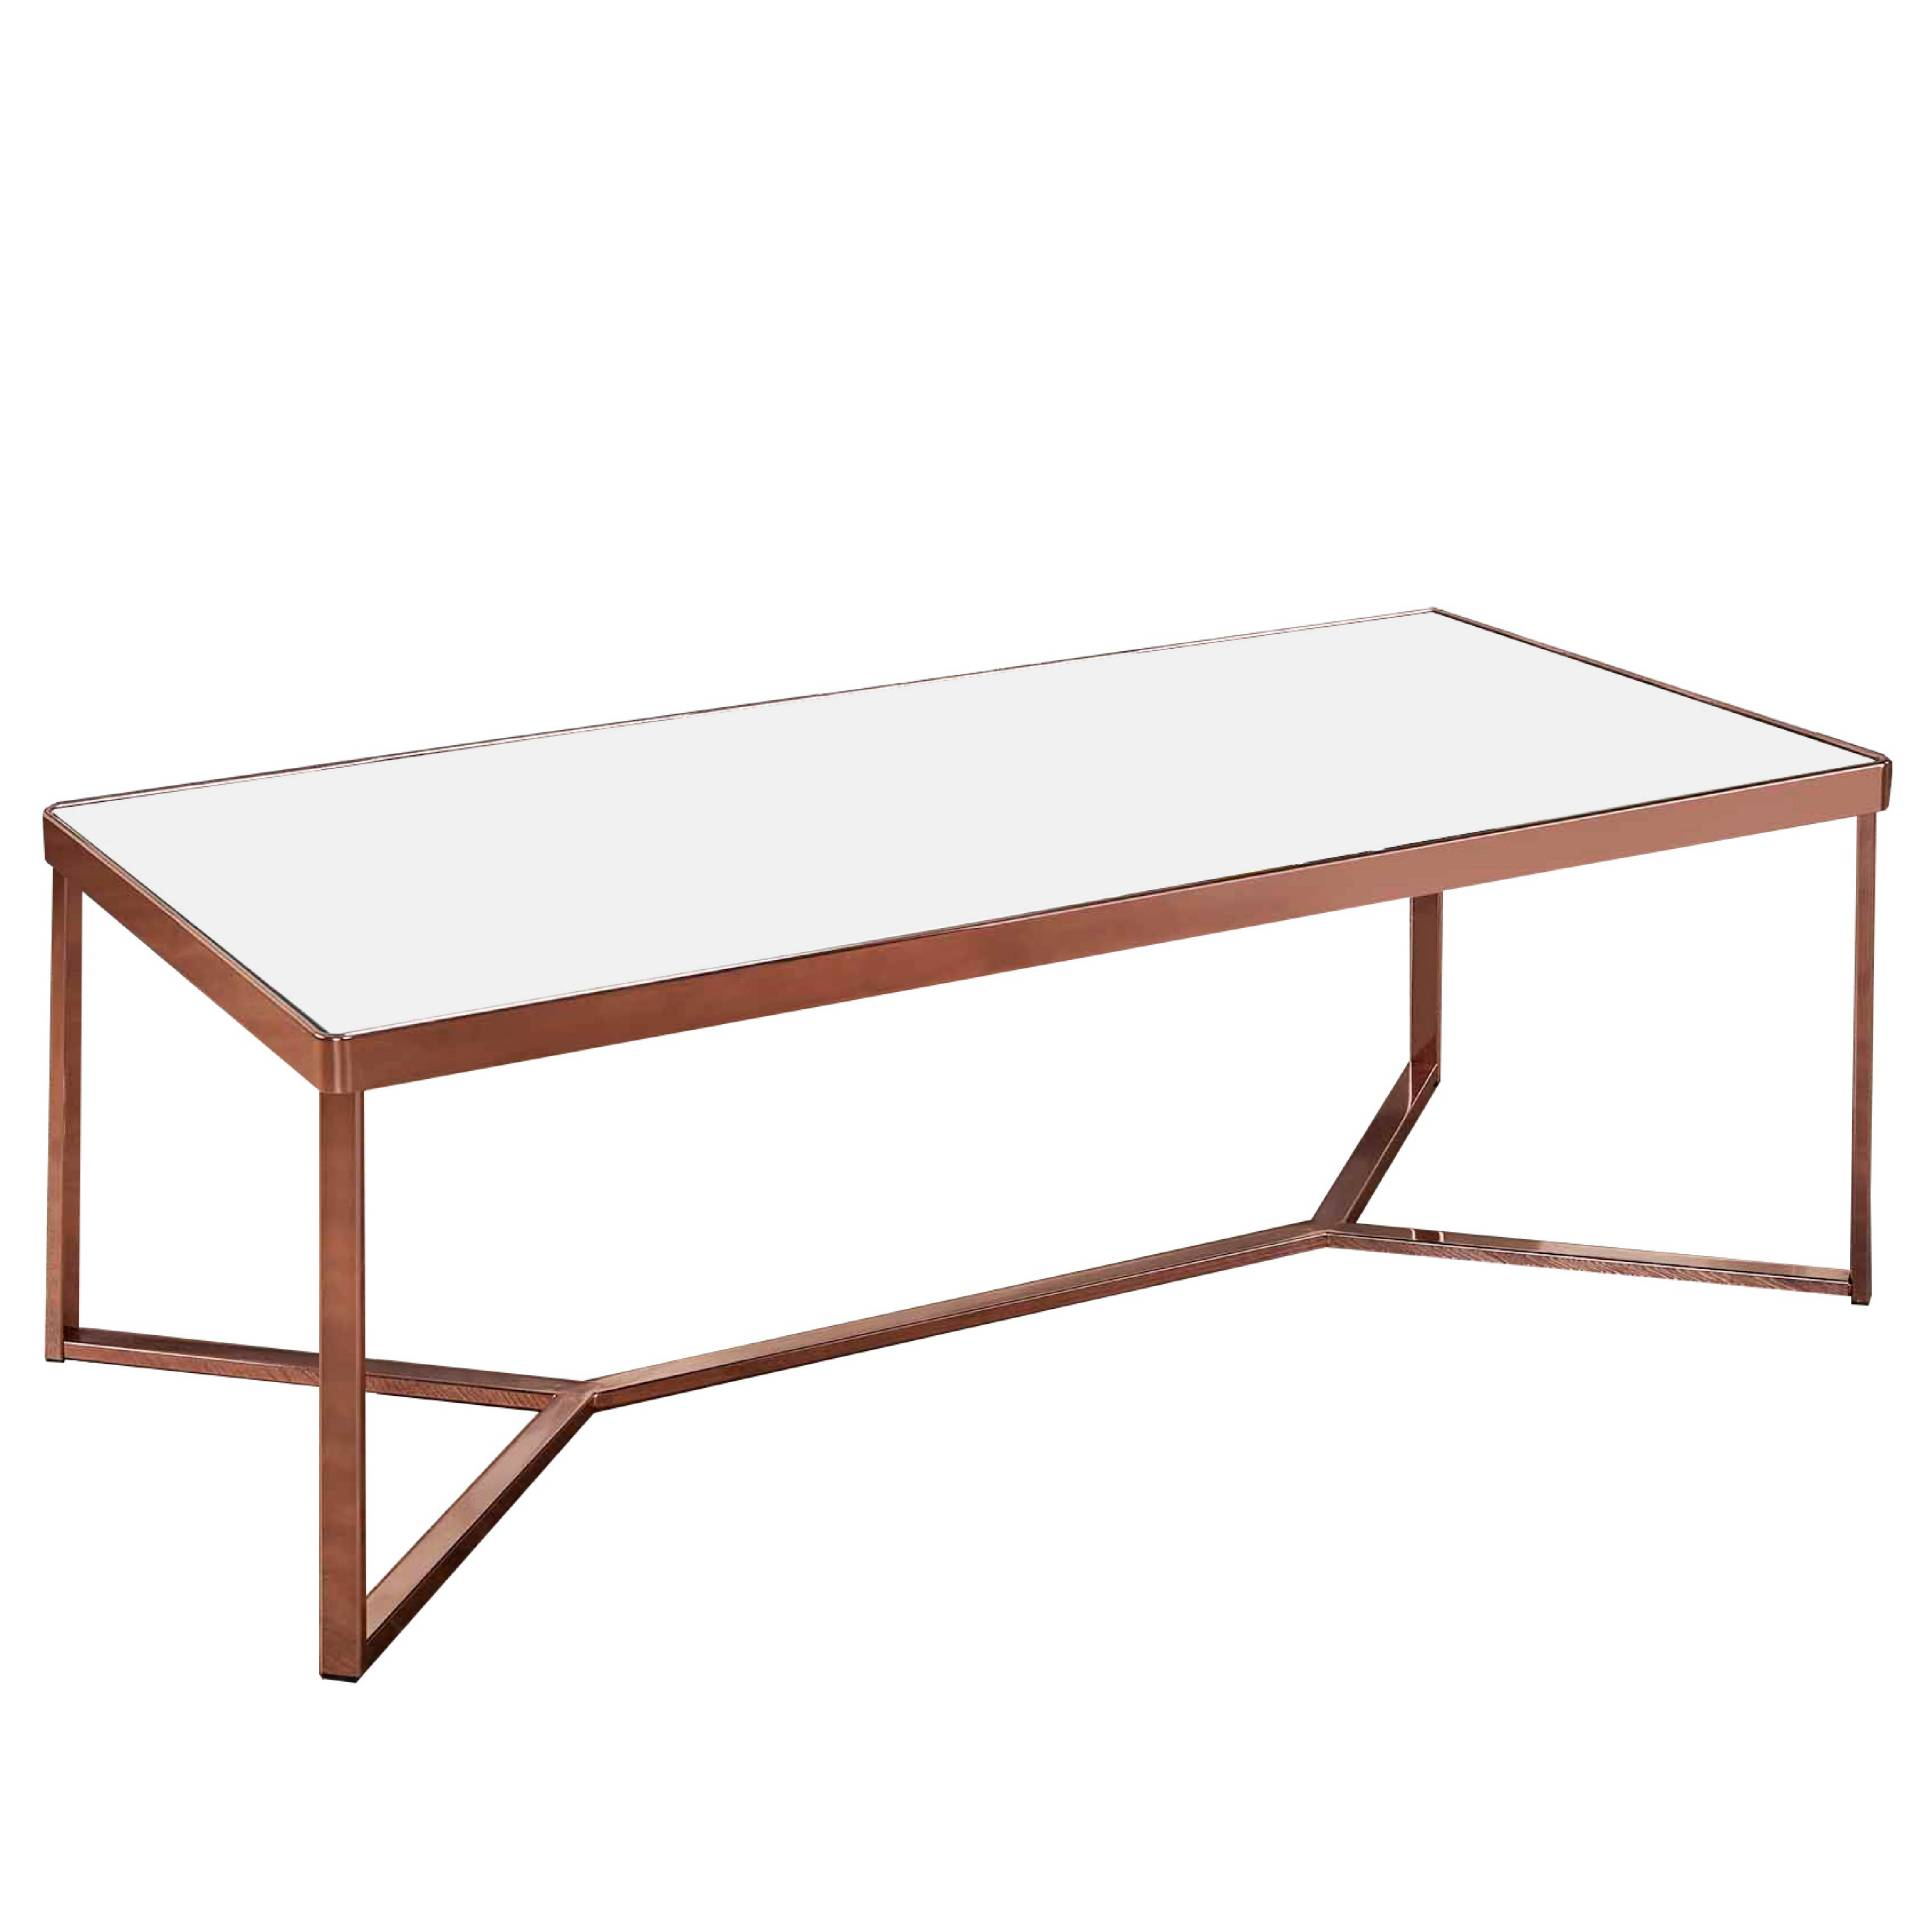 Incredible Mirror Surface Glass Coffee Table Supply One Stop Eco Caraccident5 Cool Chair Designs And Ideas Caraccident5Info